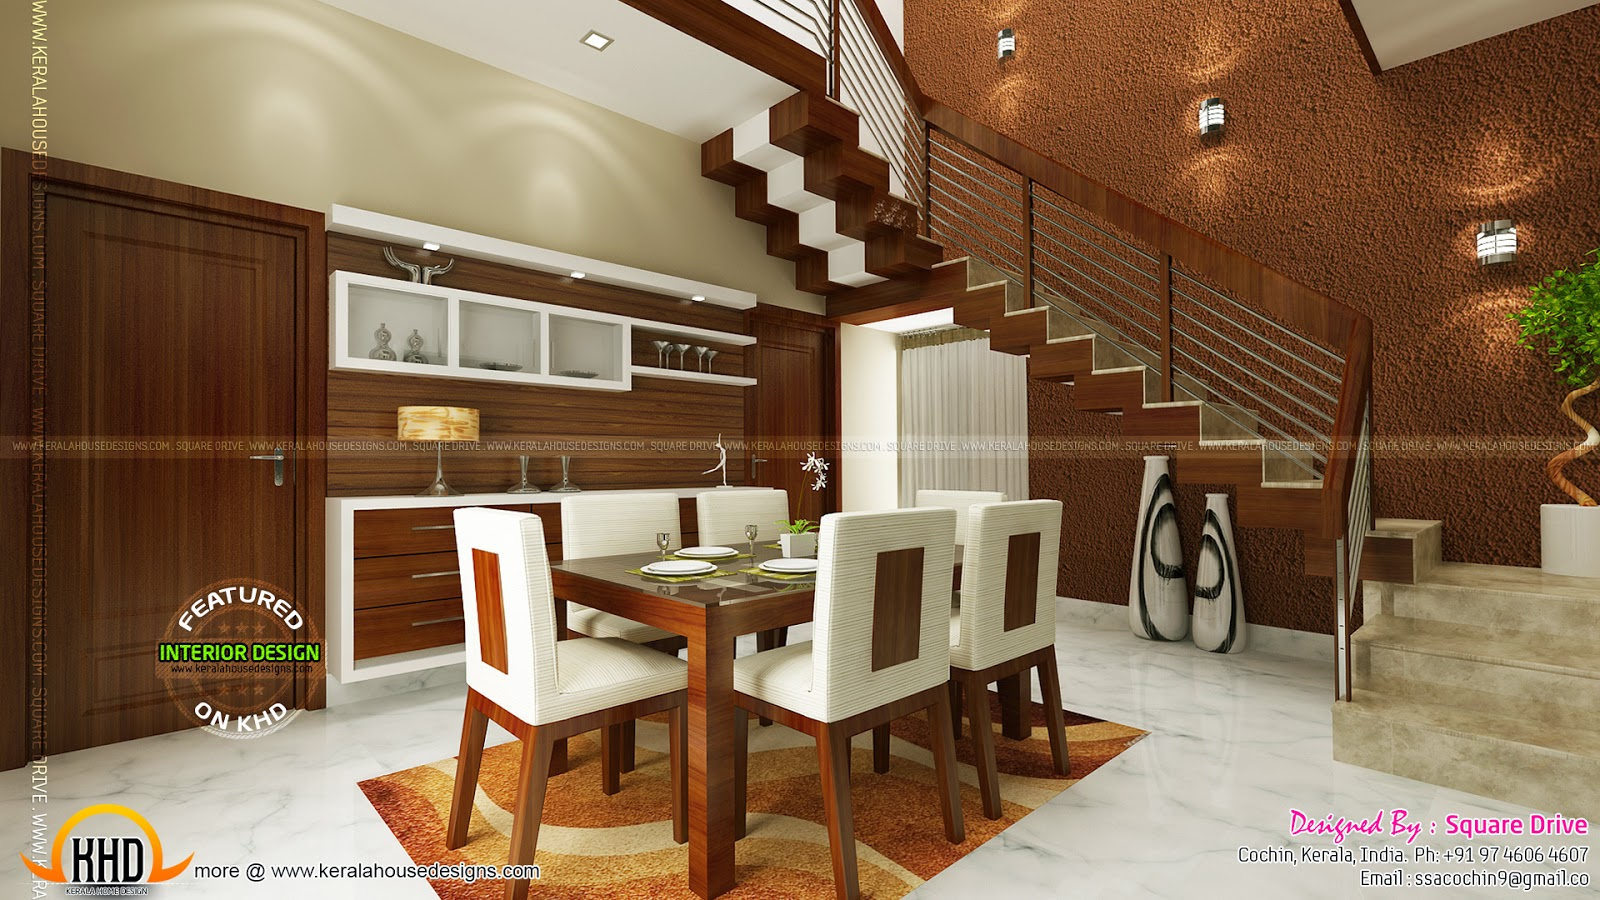 Cochin interior design kerala home design and floor plans - Interiors of small dining room ...